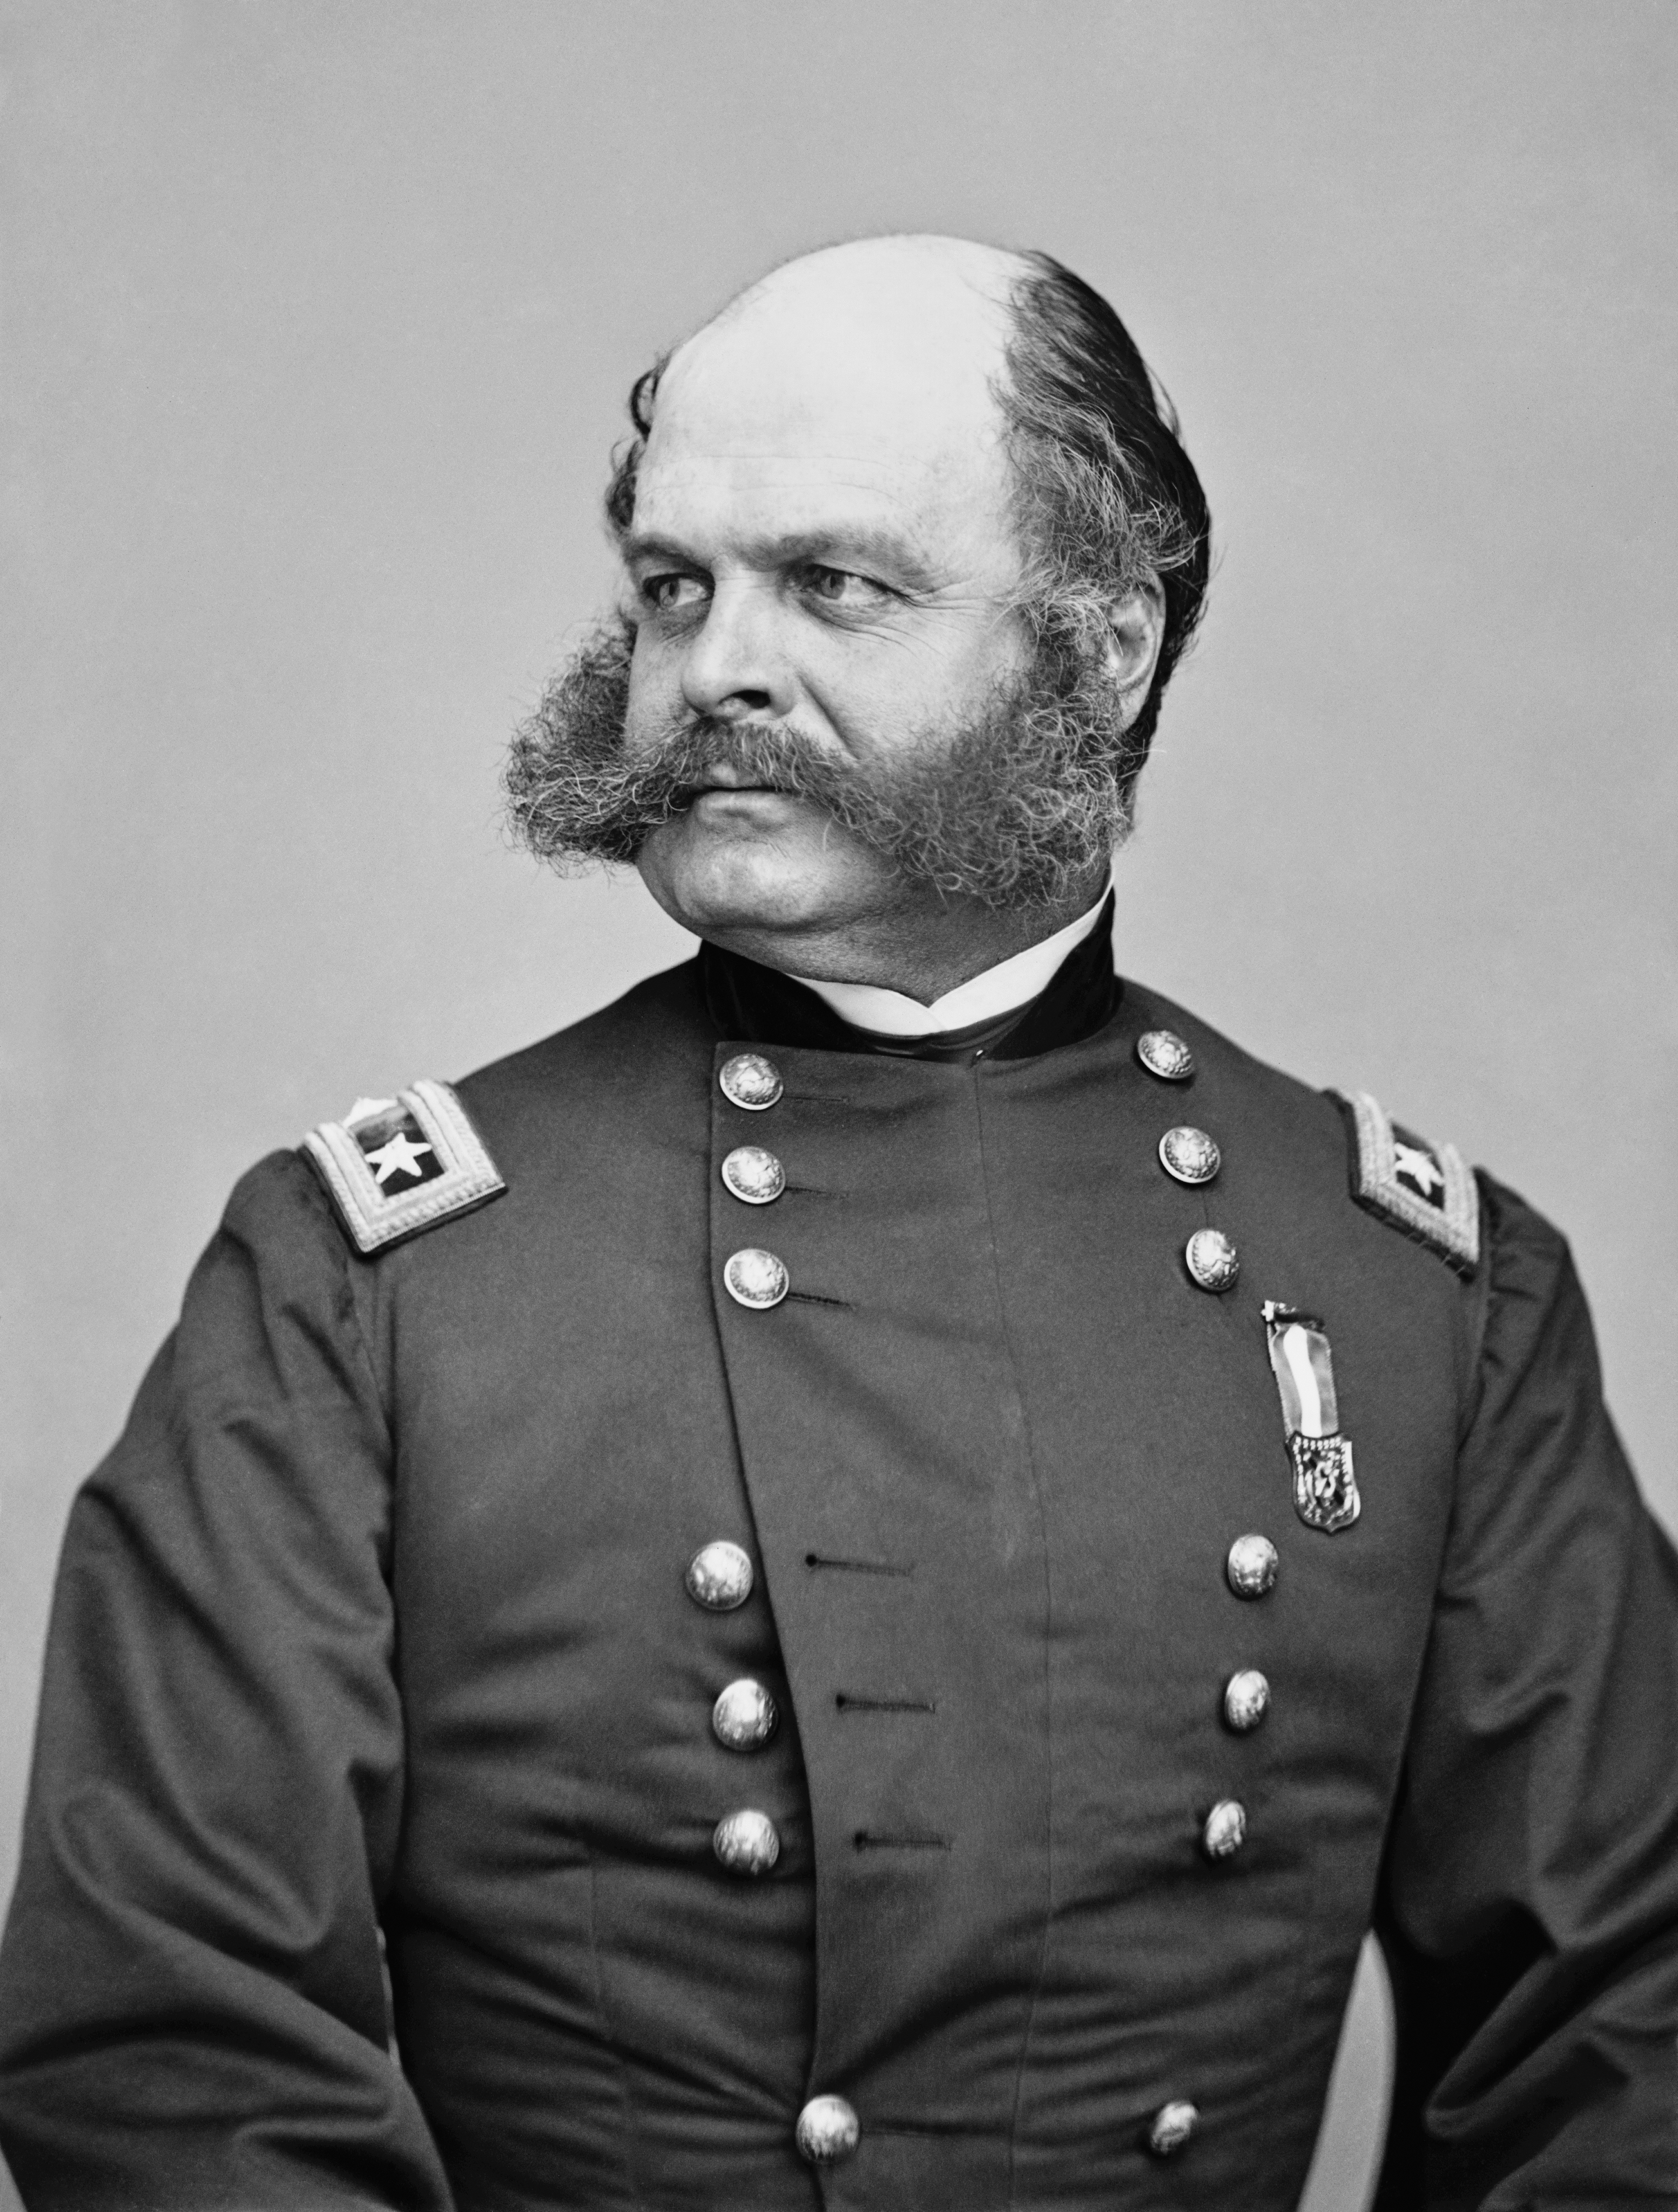 Sideburns Wikipedia - If celebrities were 19th century military generals they would look like this